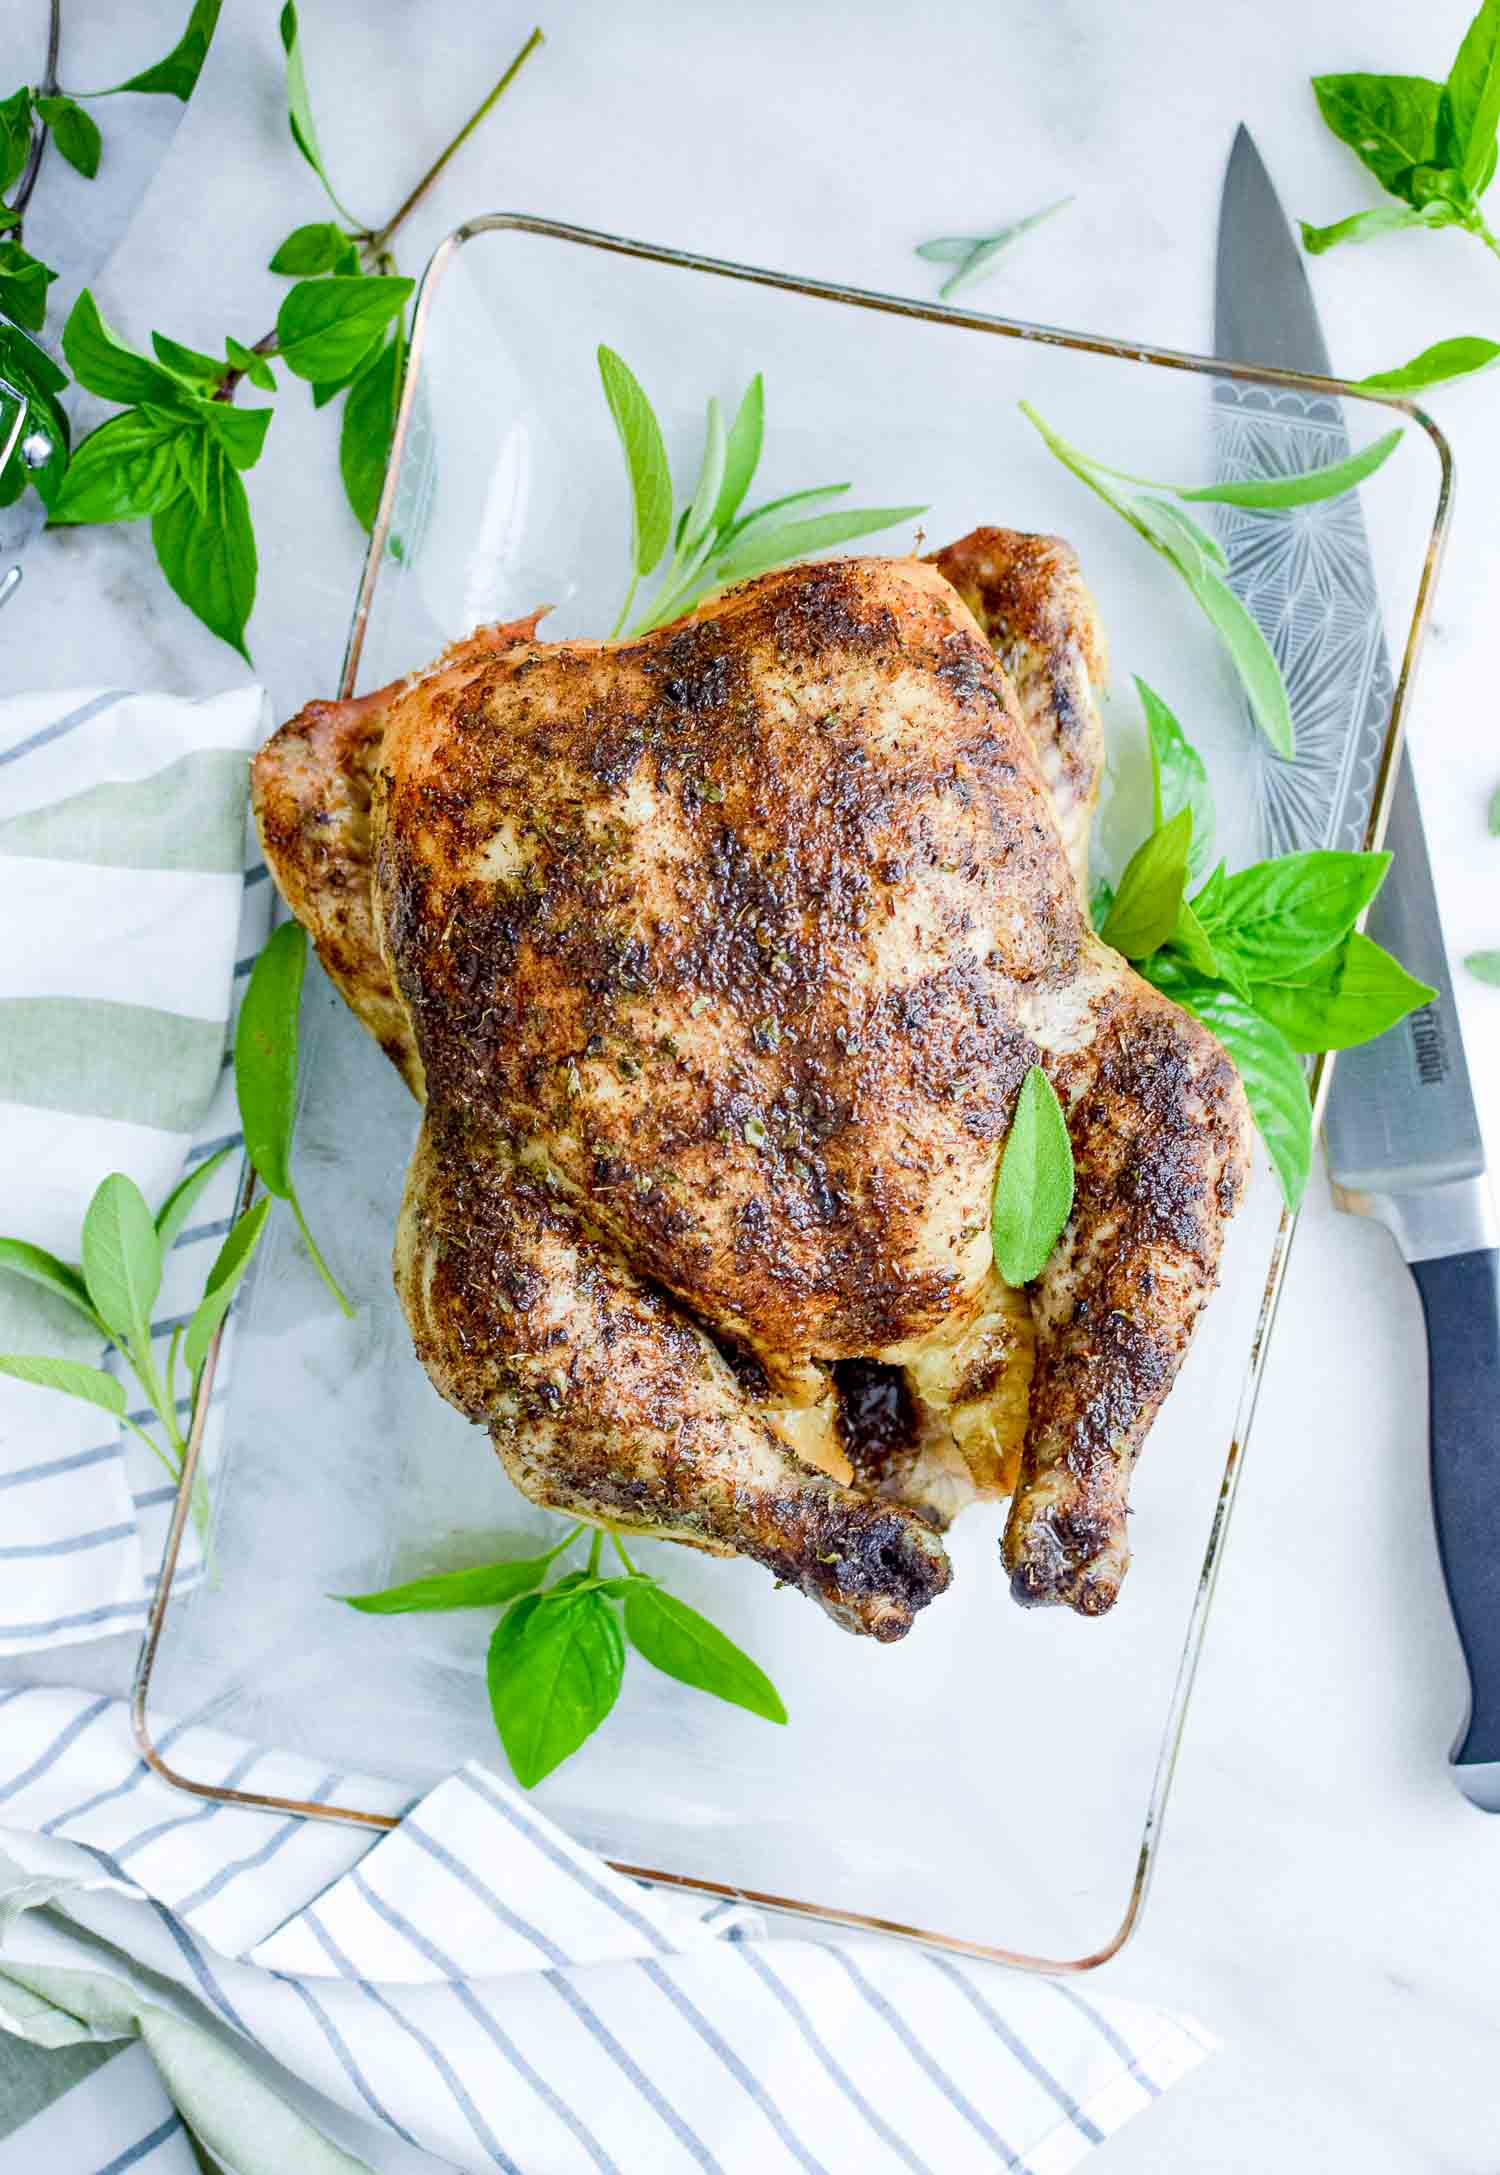 A whole roasted chicken on a clear tray with a metal knife and green herbs around it.